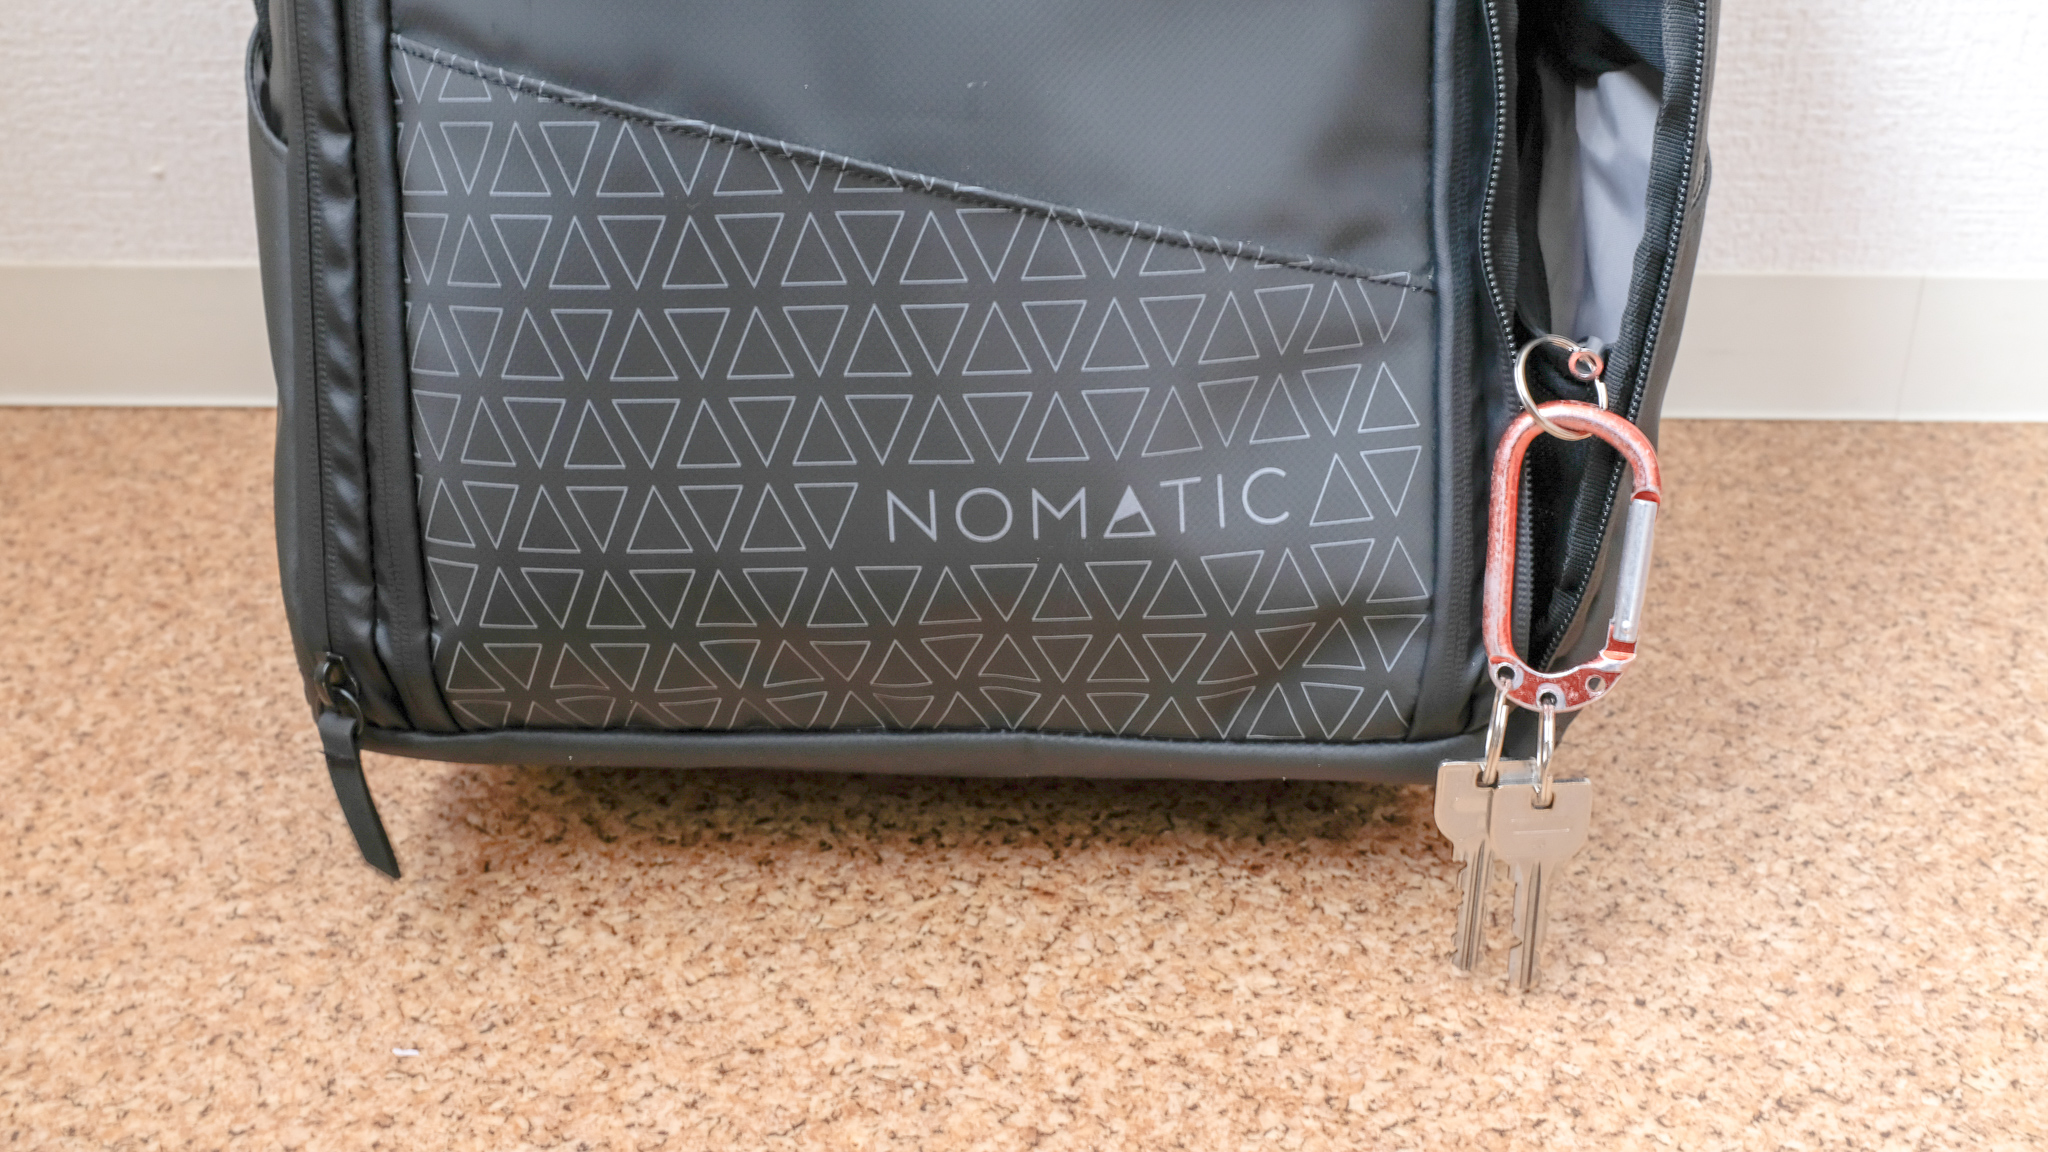 NOMATIC Travel Pack Review: Most Functional Travel Bag